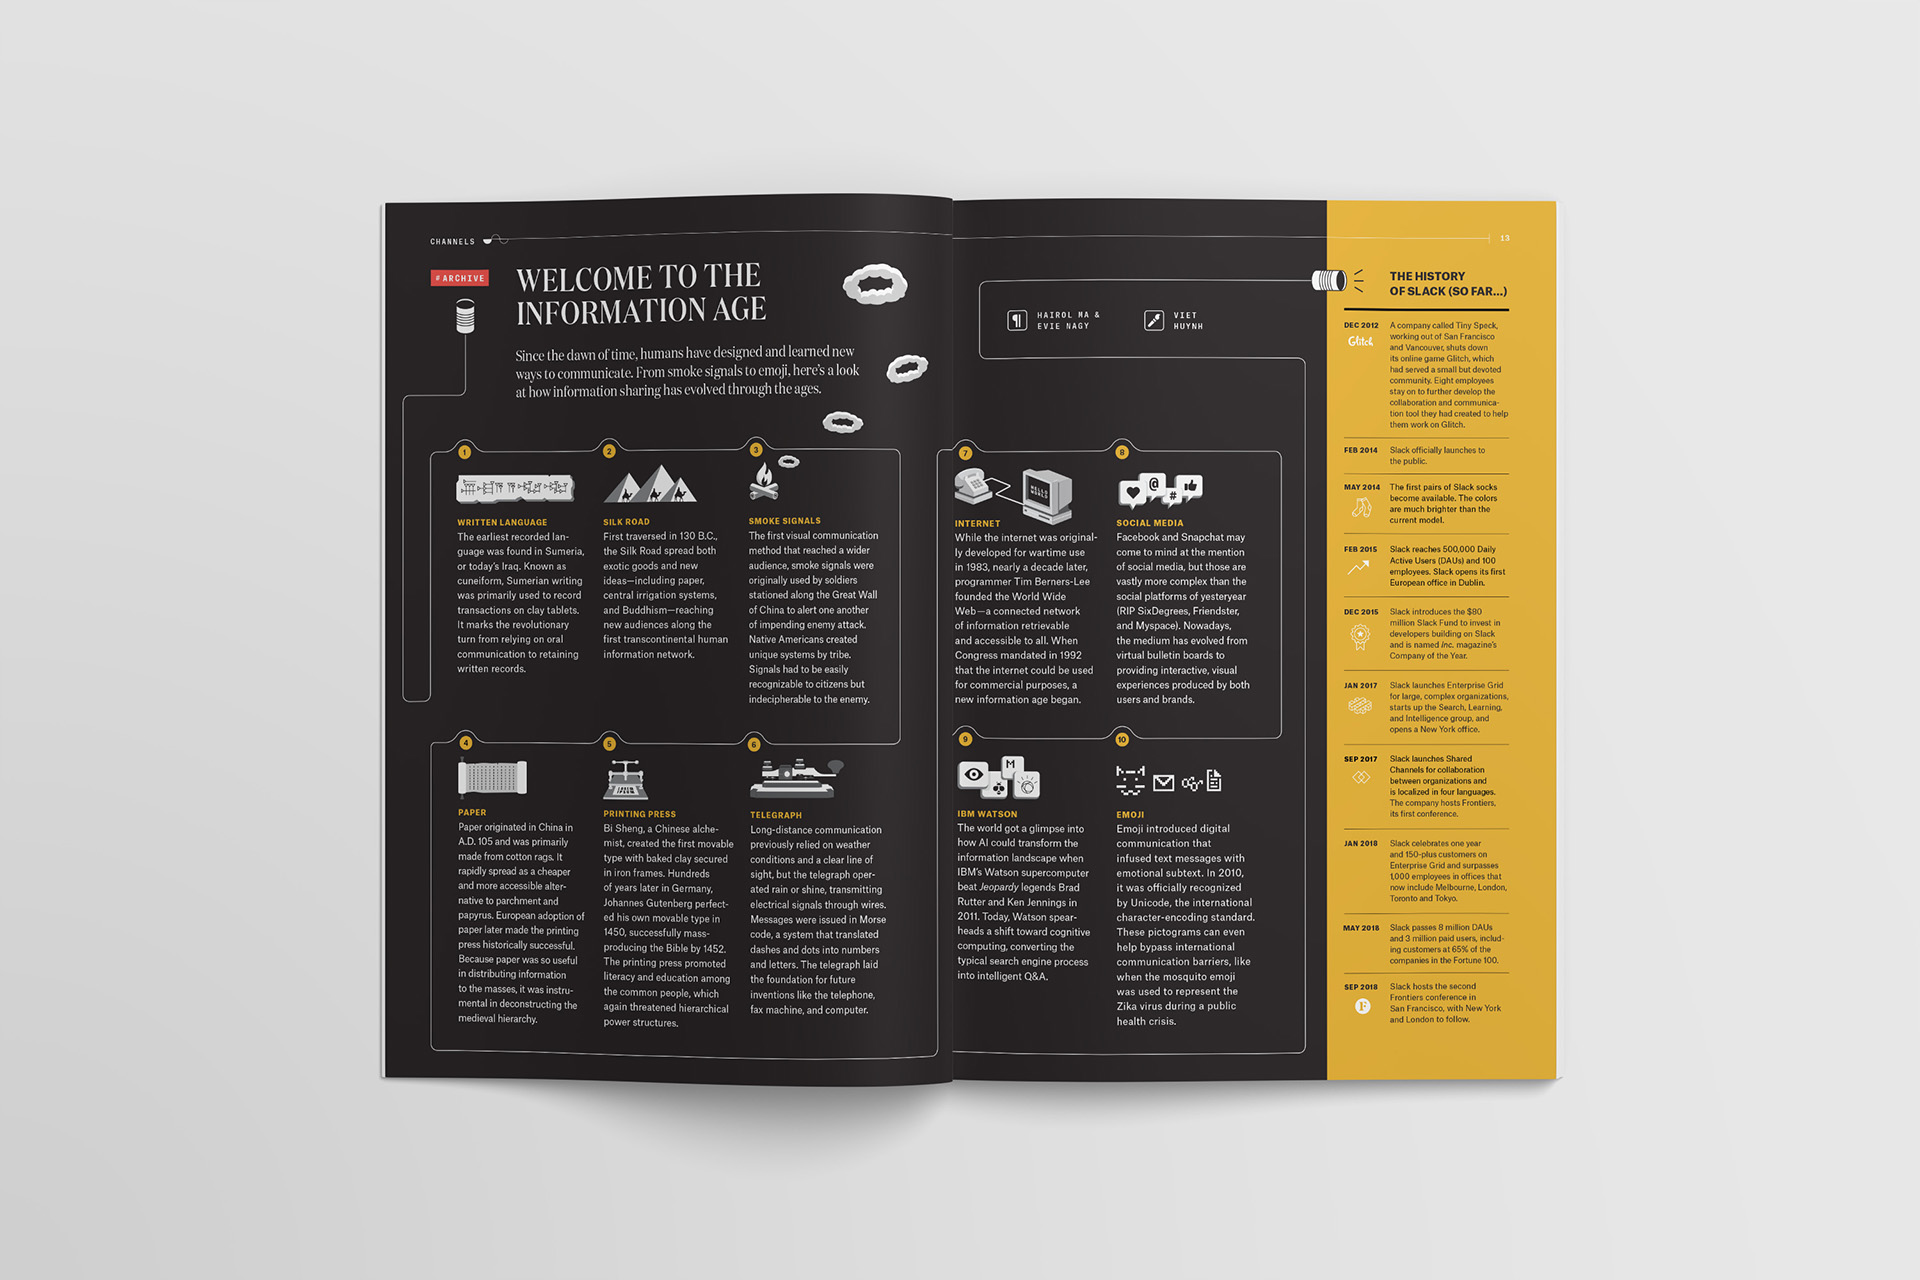 """""""Welcome to the information age"""" timeline and history illustration of knowledge sharing as well as a sidebar of the history of slack so far, in Channels magazine."""